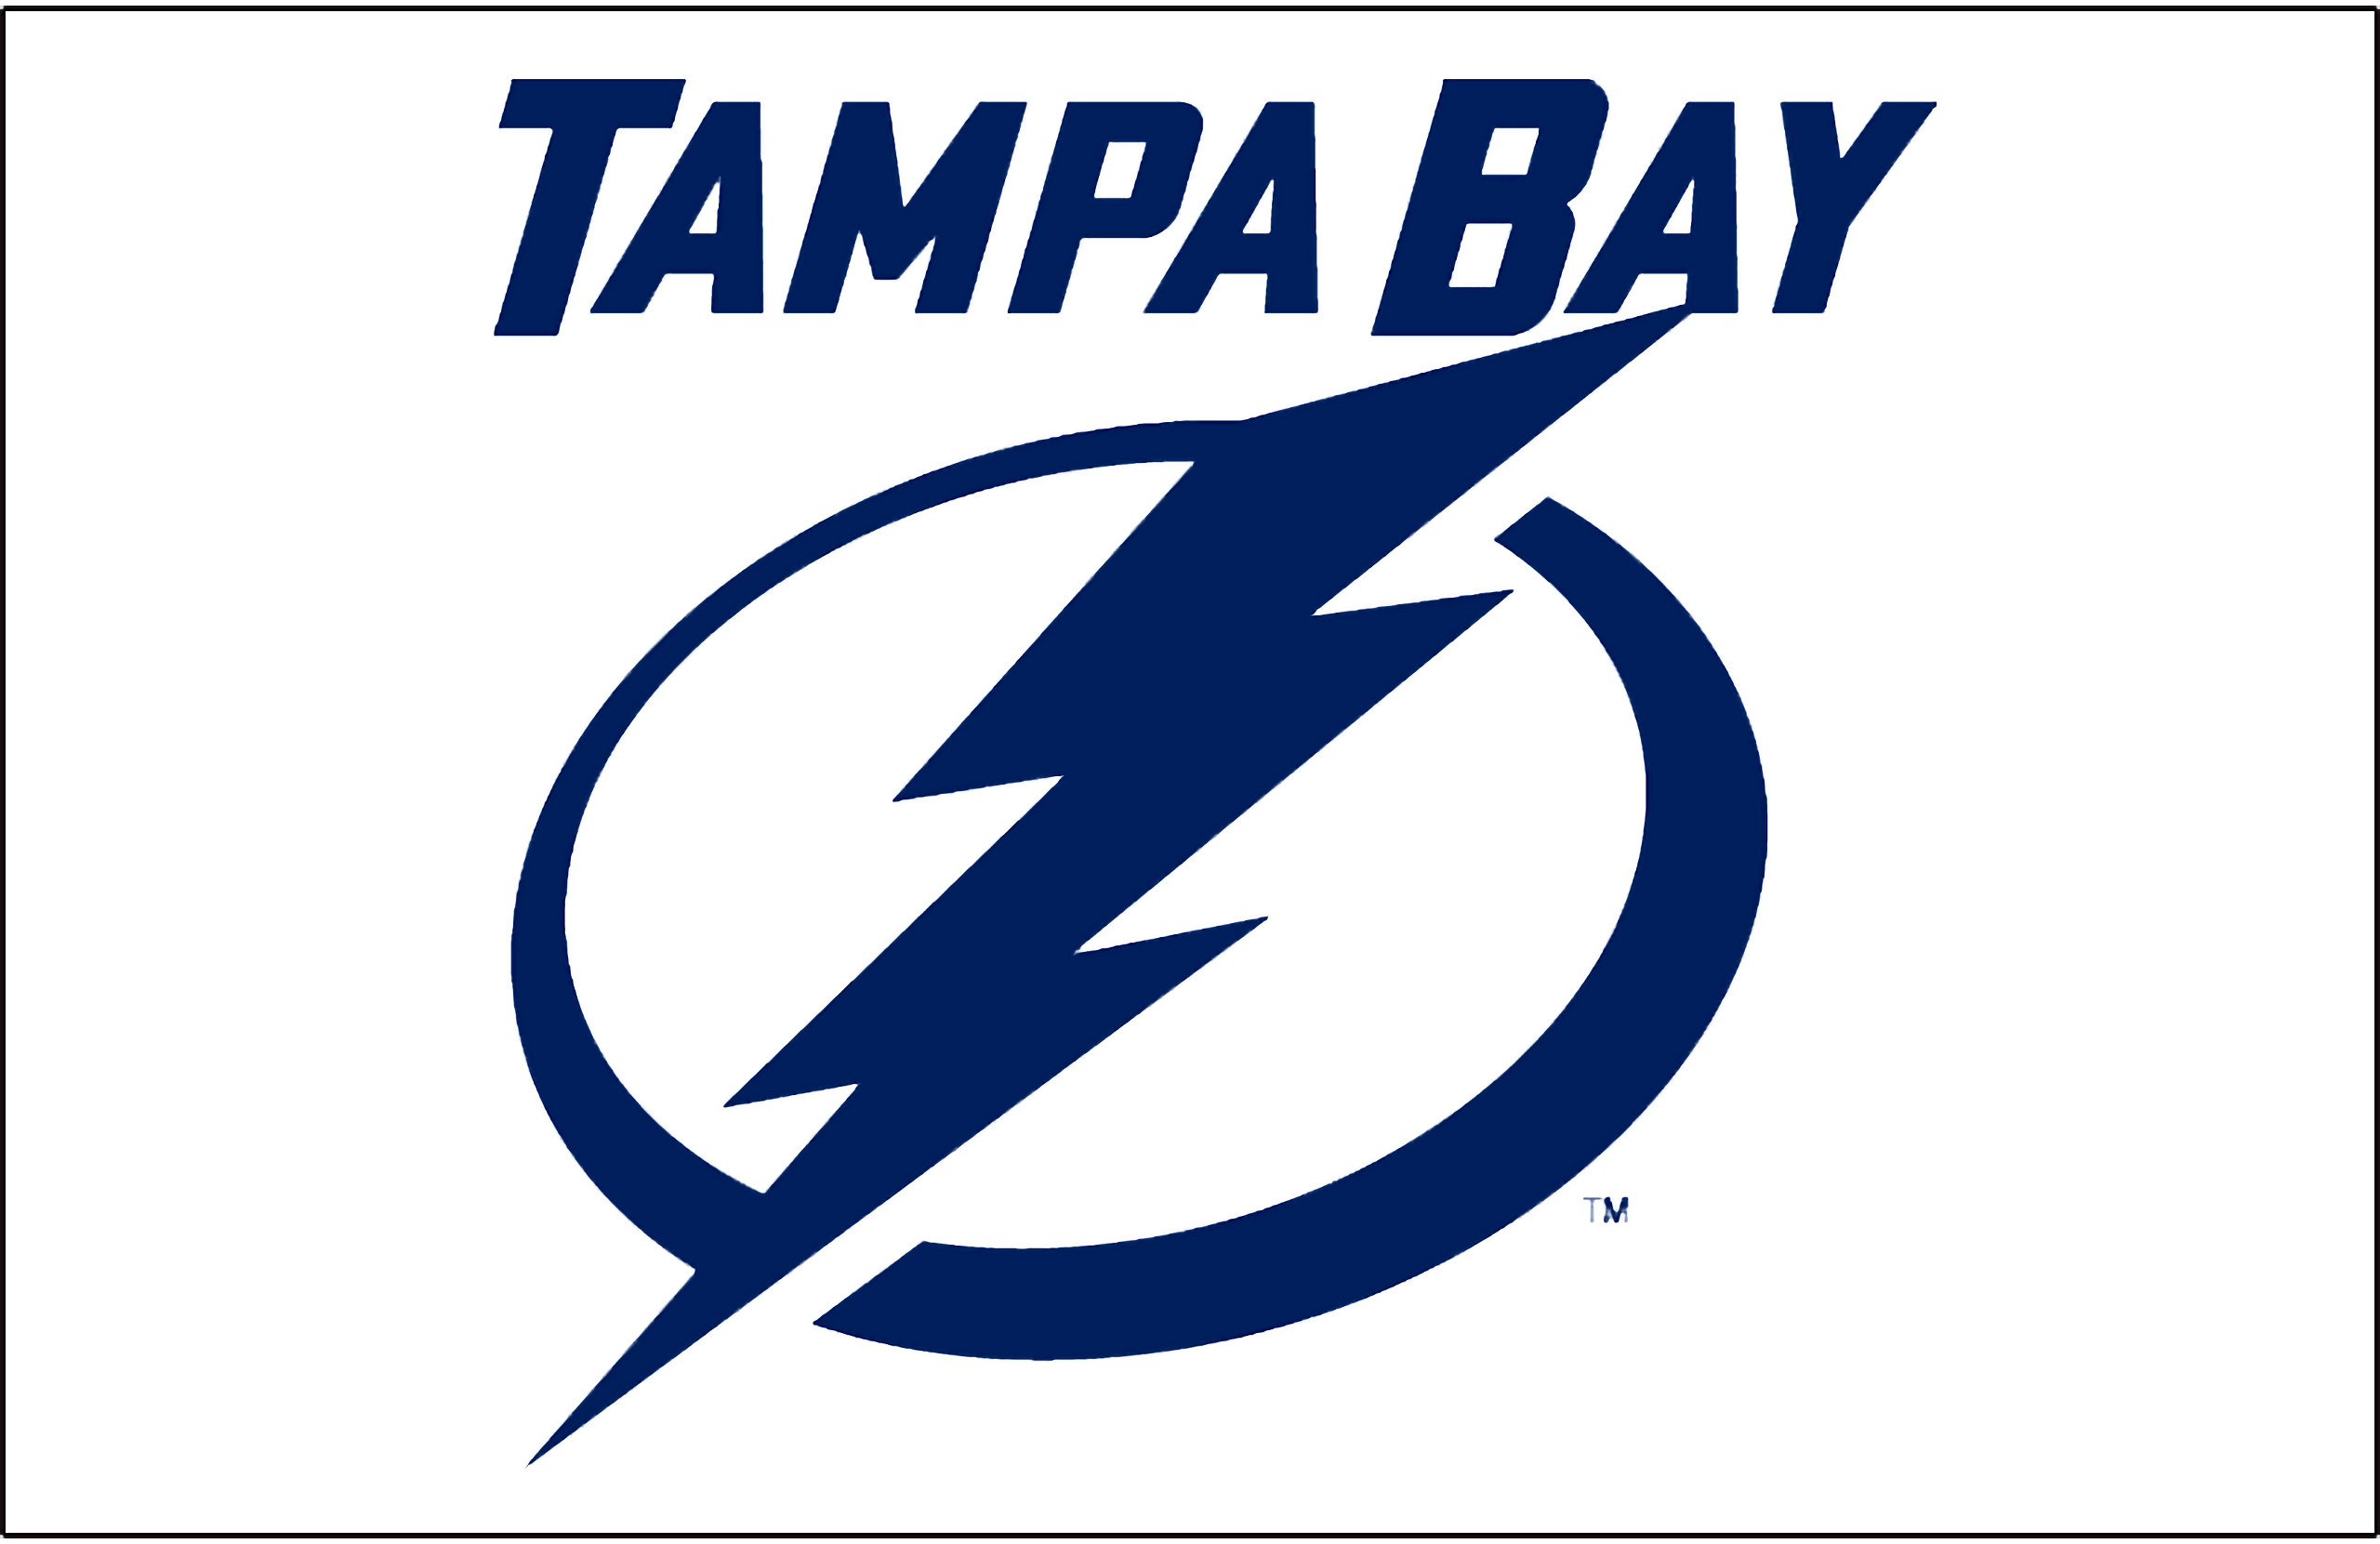 2560x1661 Tampa Bay Lightning HD Wallpaper | Background Image |  | ID:859299  - Wallpaper Abyss